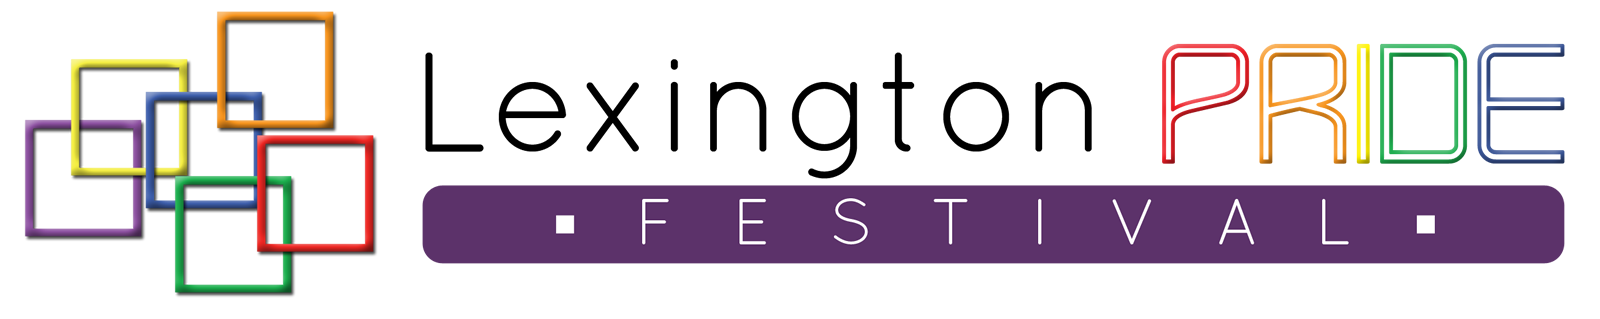 LexingtonPrideFestival-UniversalLogo1600x319